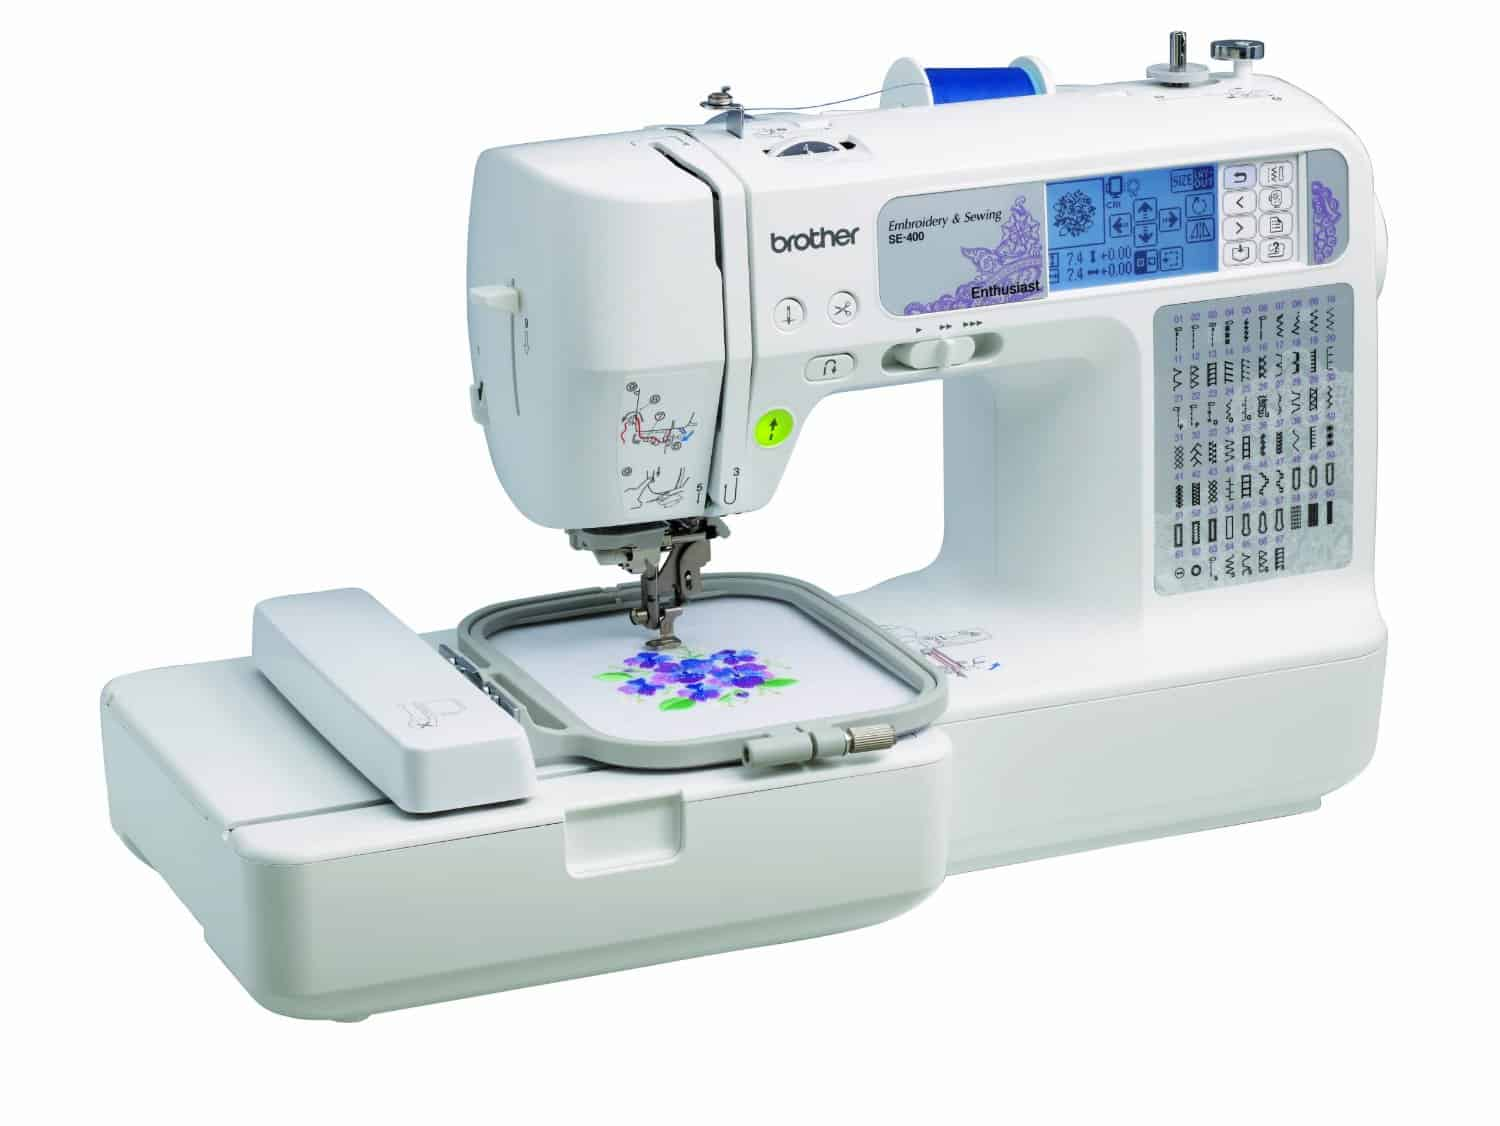 embroder machine